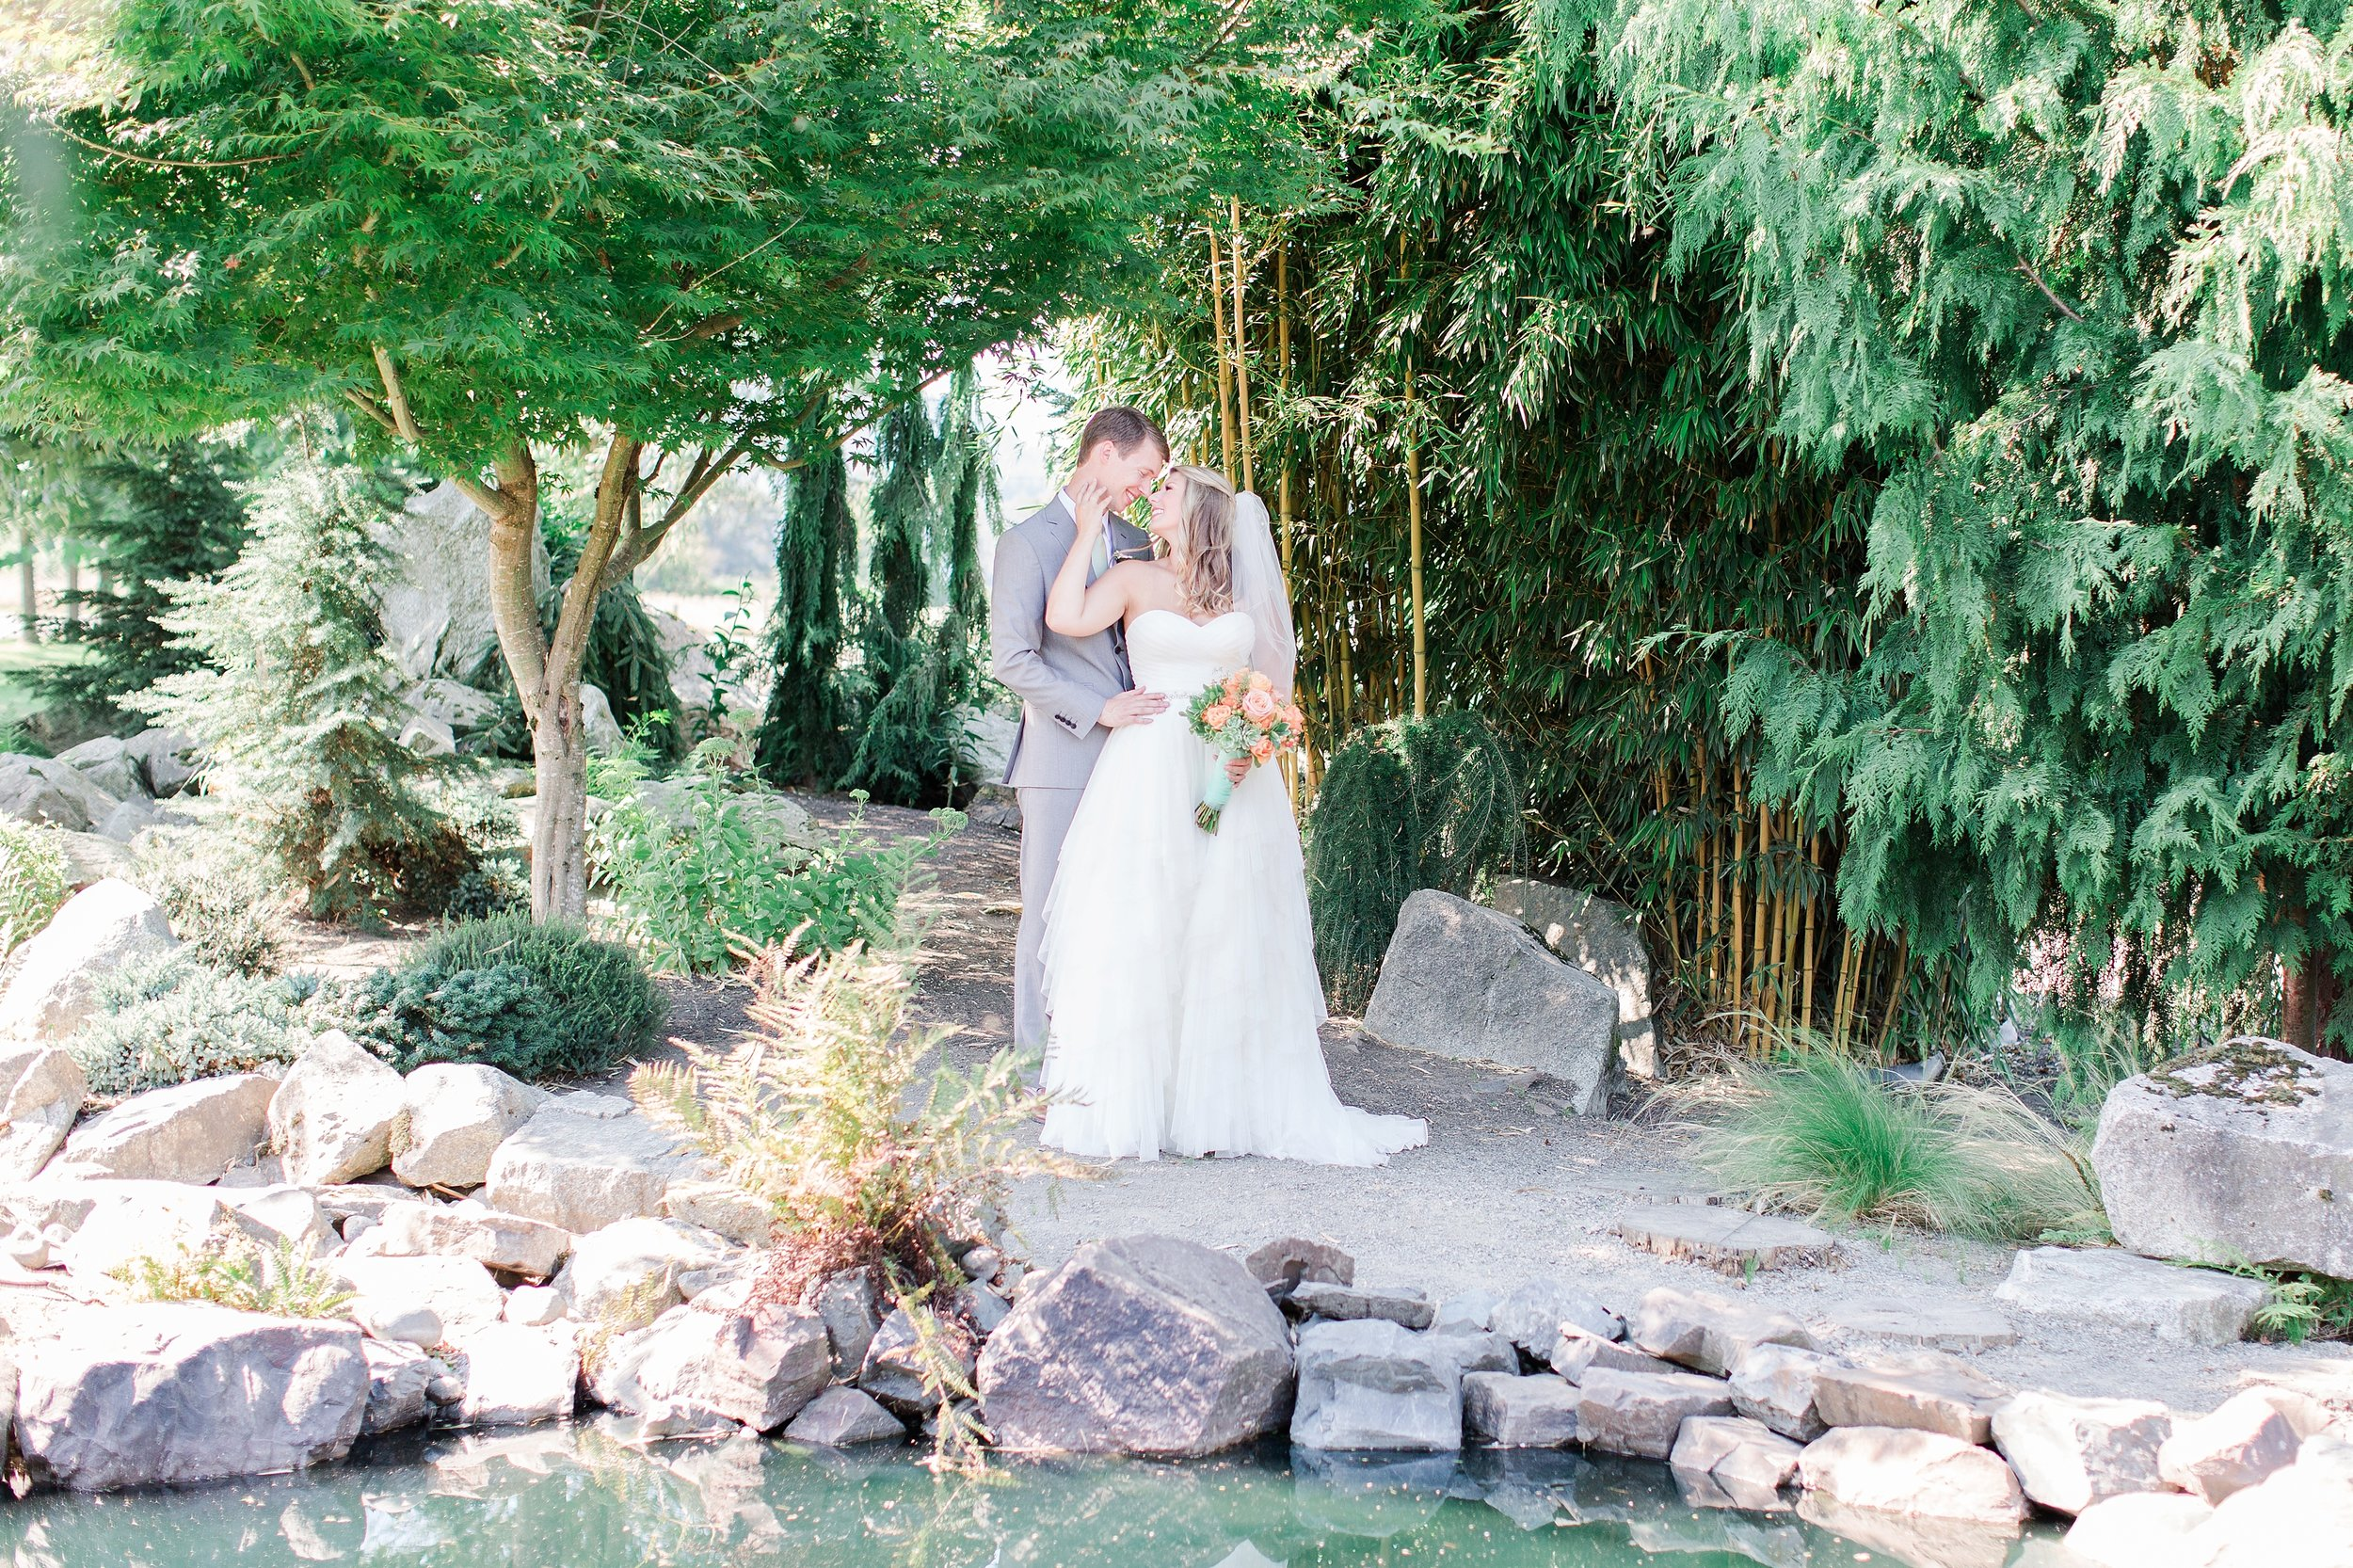 seattle wedding photographer_0226.jpg